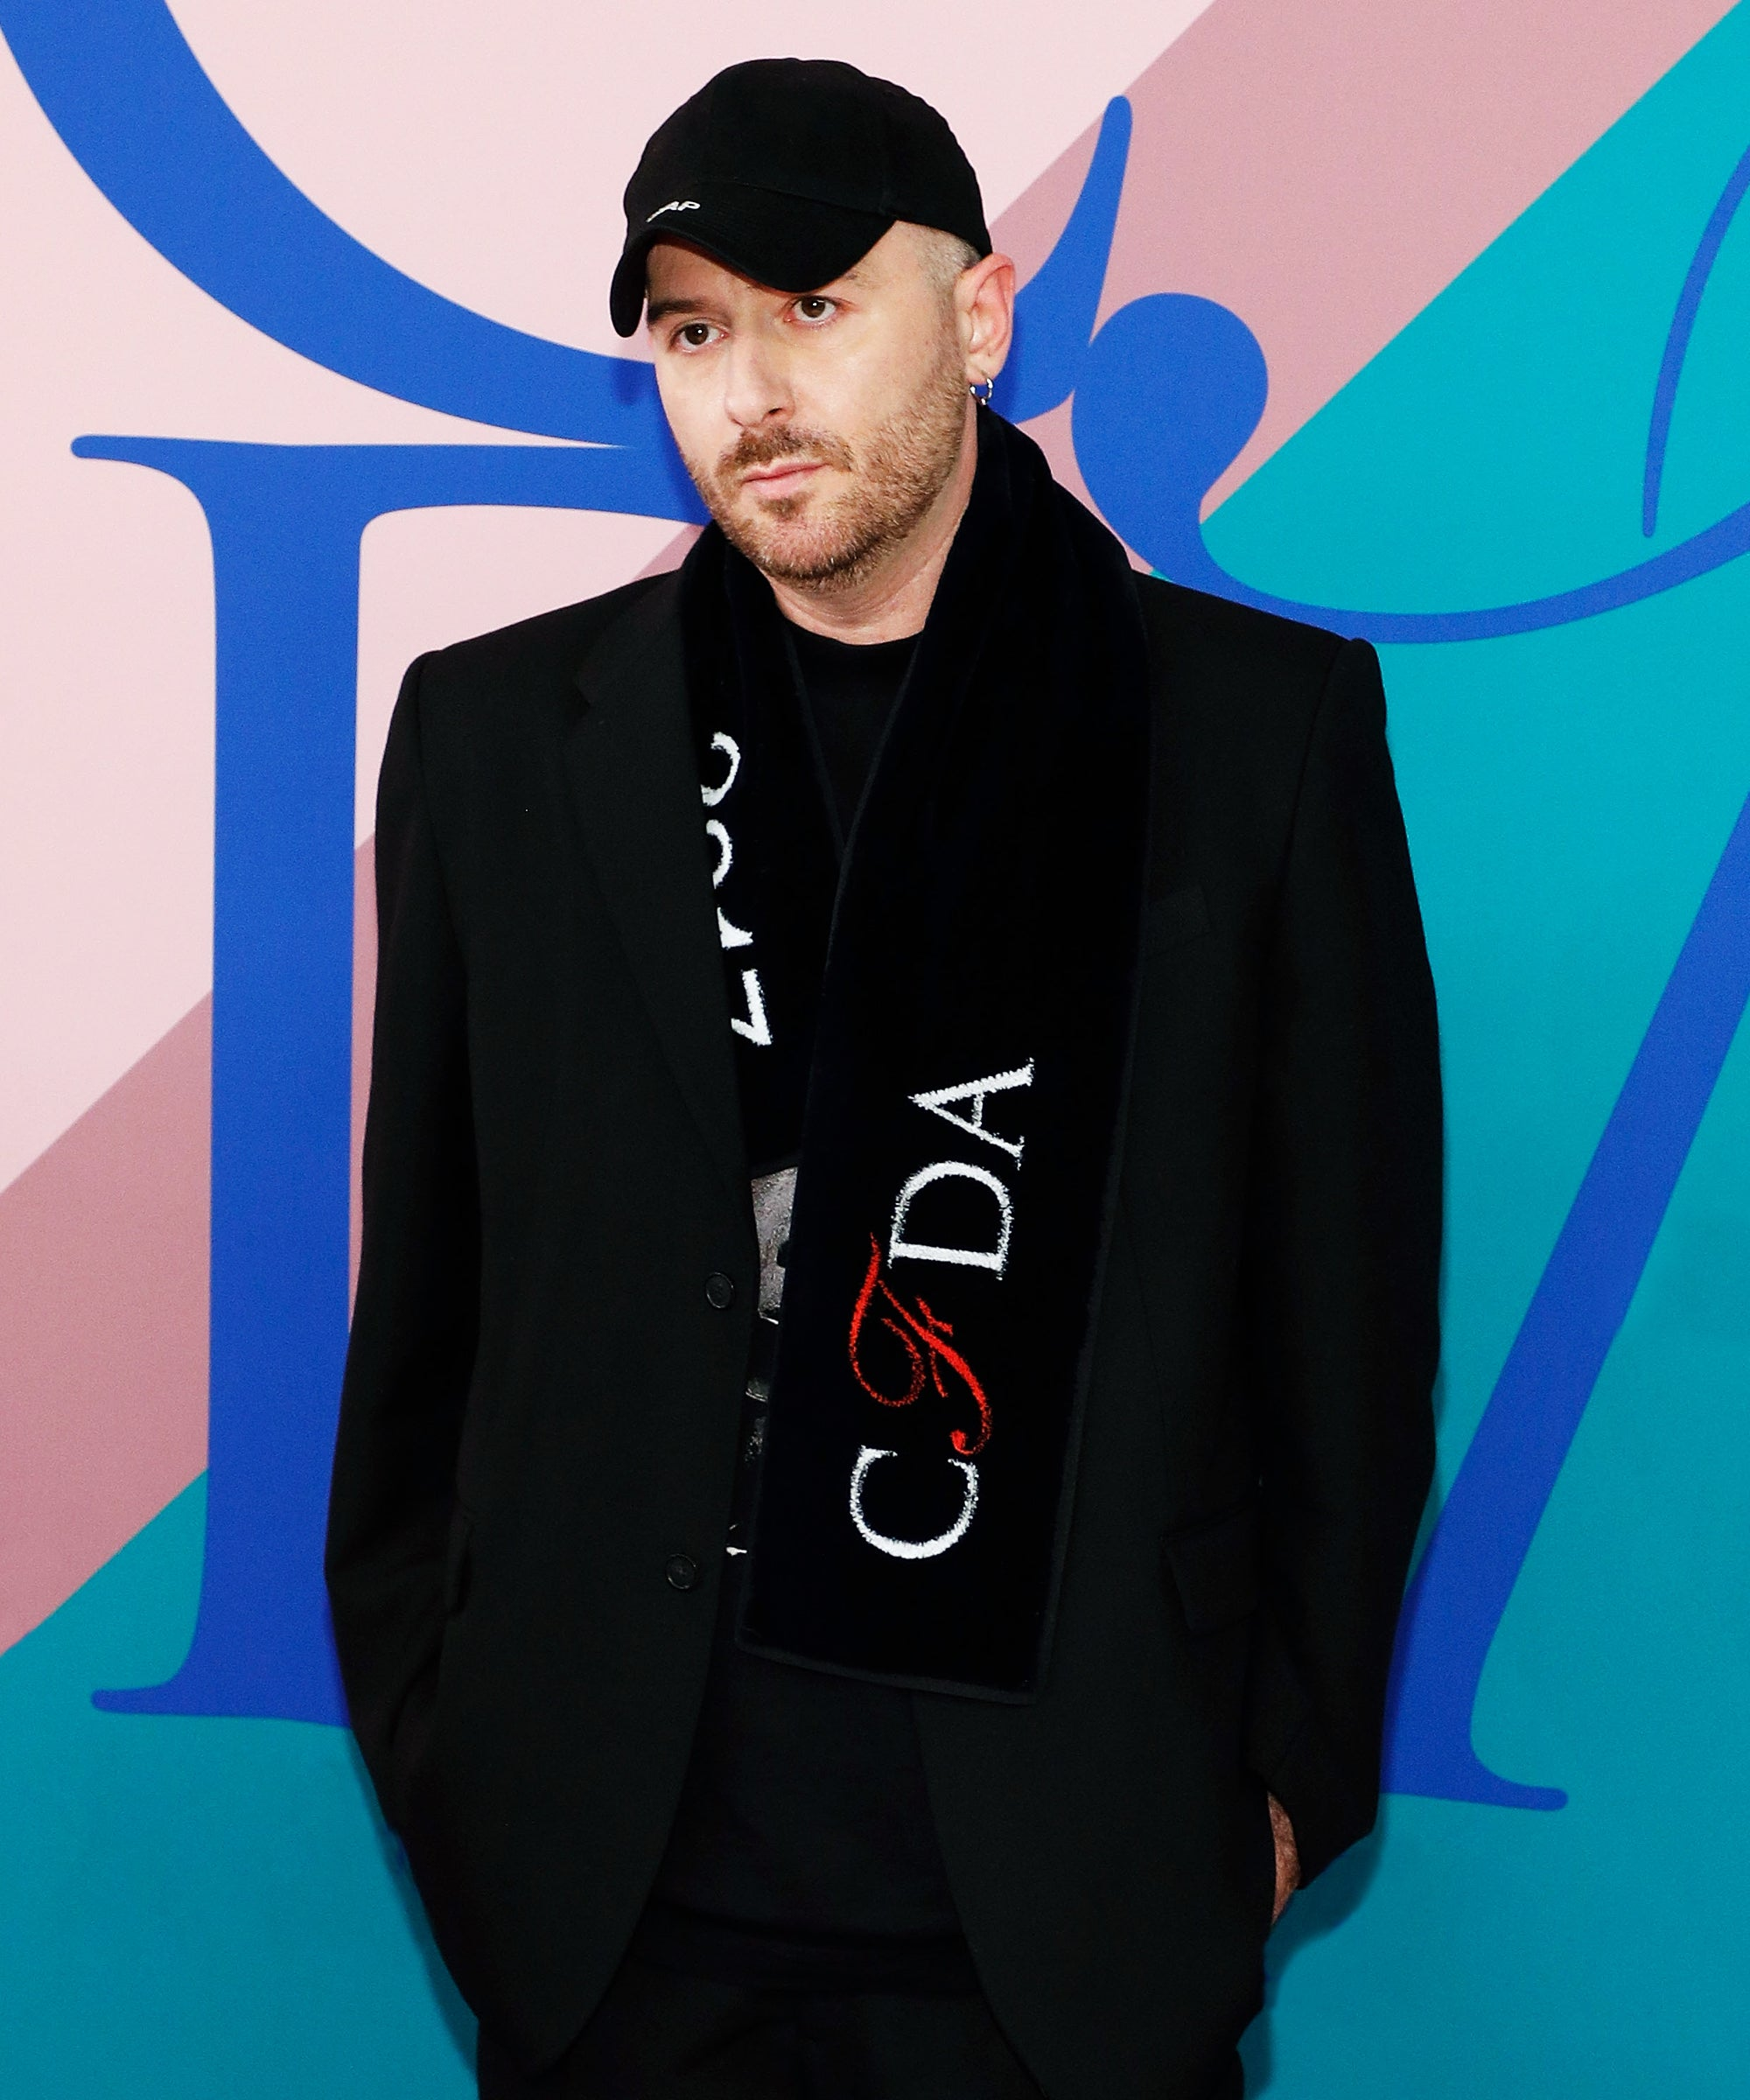 Vetements' Demna Gvasalia Steps Down After Completing His Mission